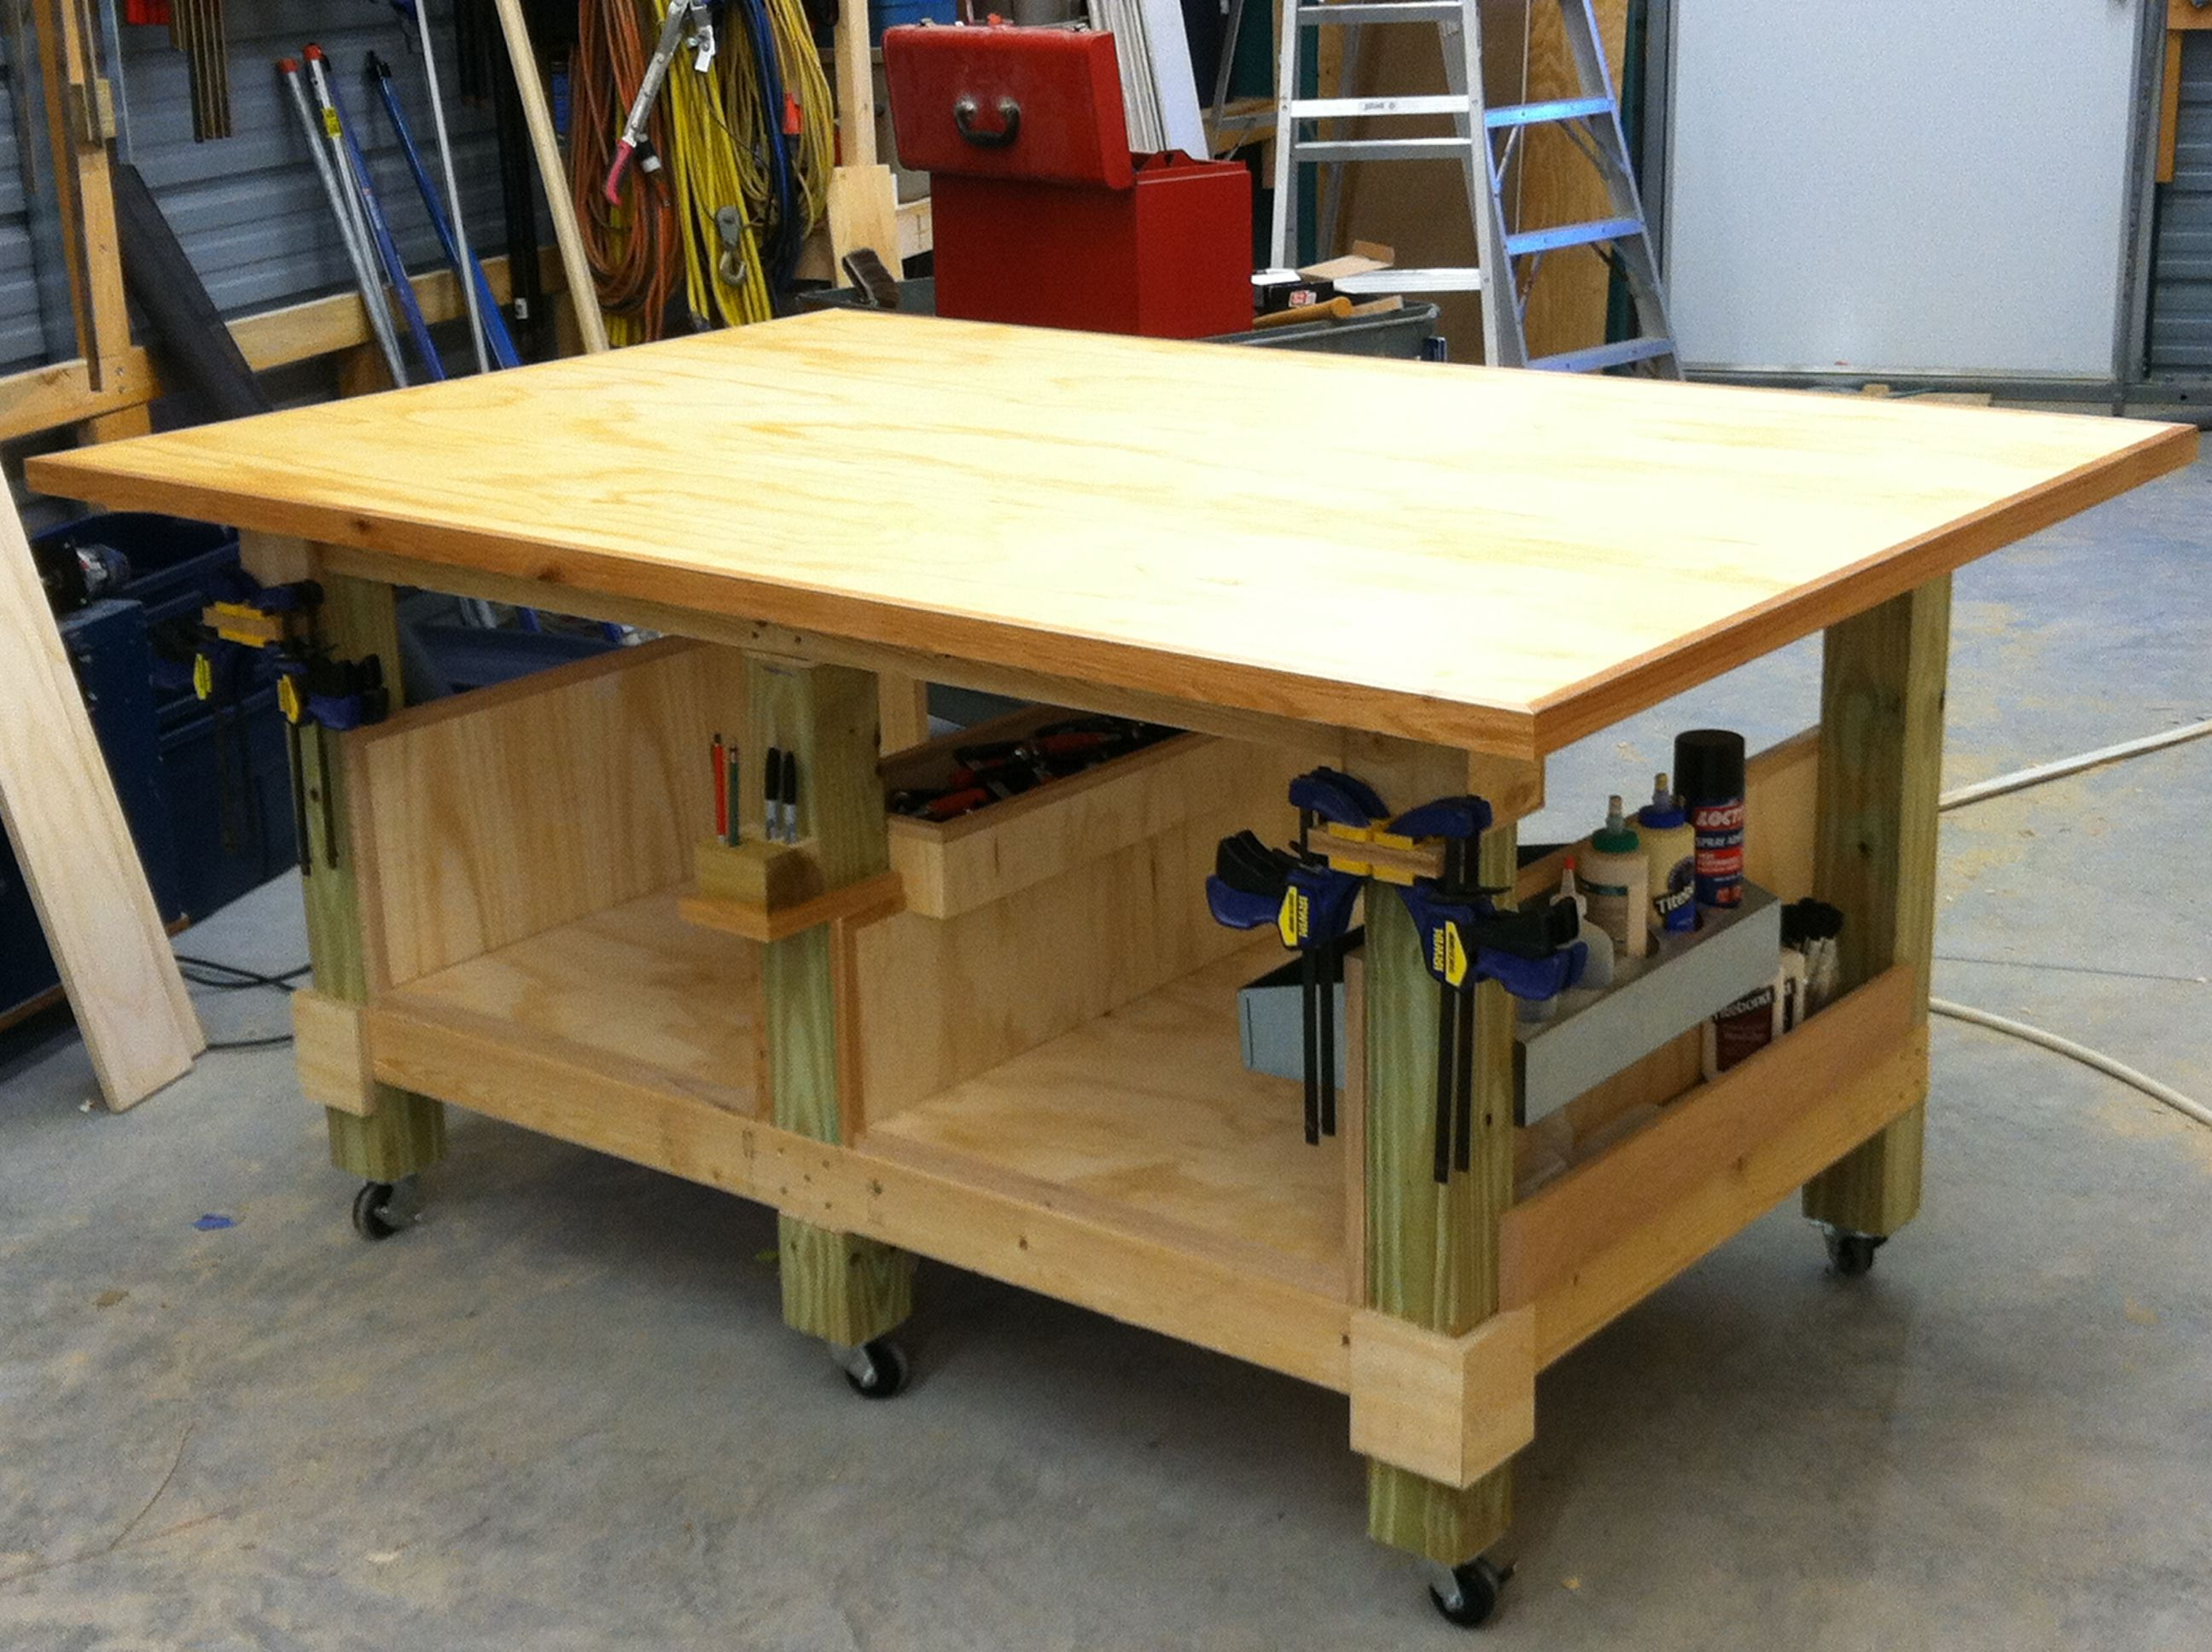 My 4 x 6 ft woodworking assembly table. Six legs from 4 x